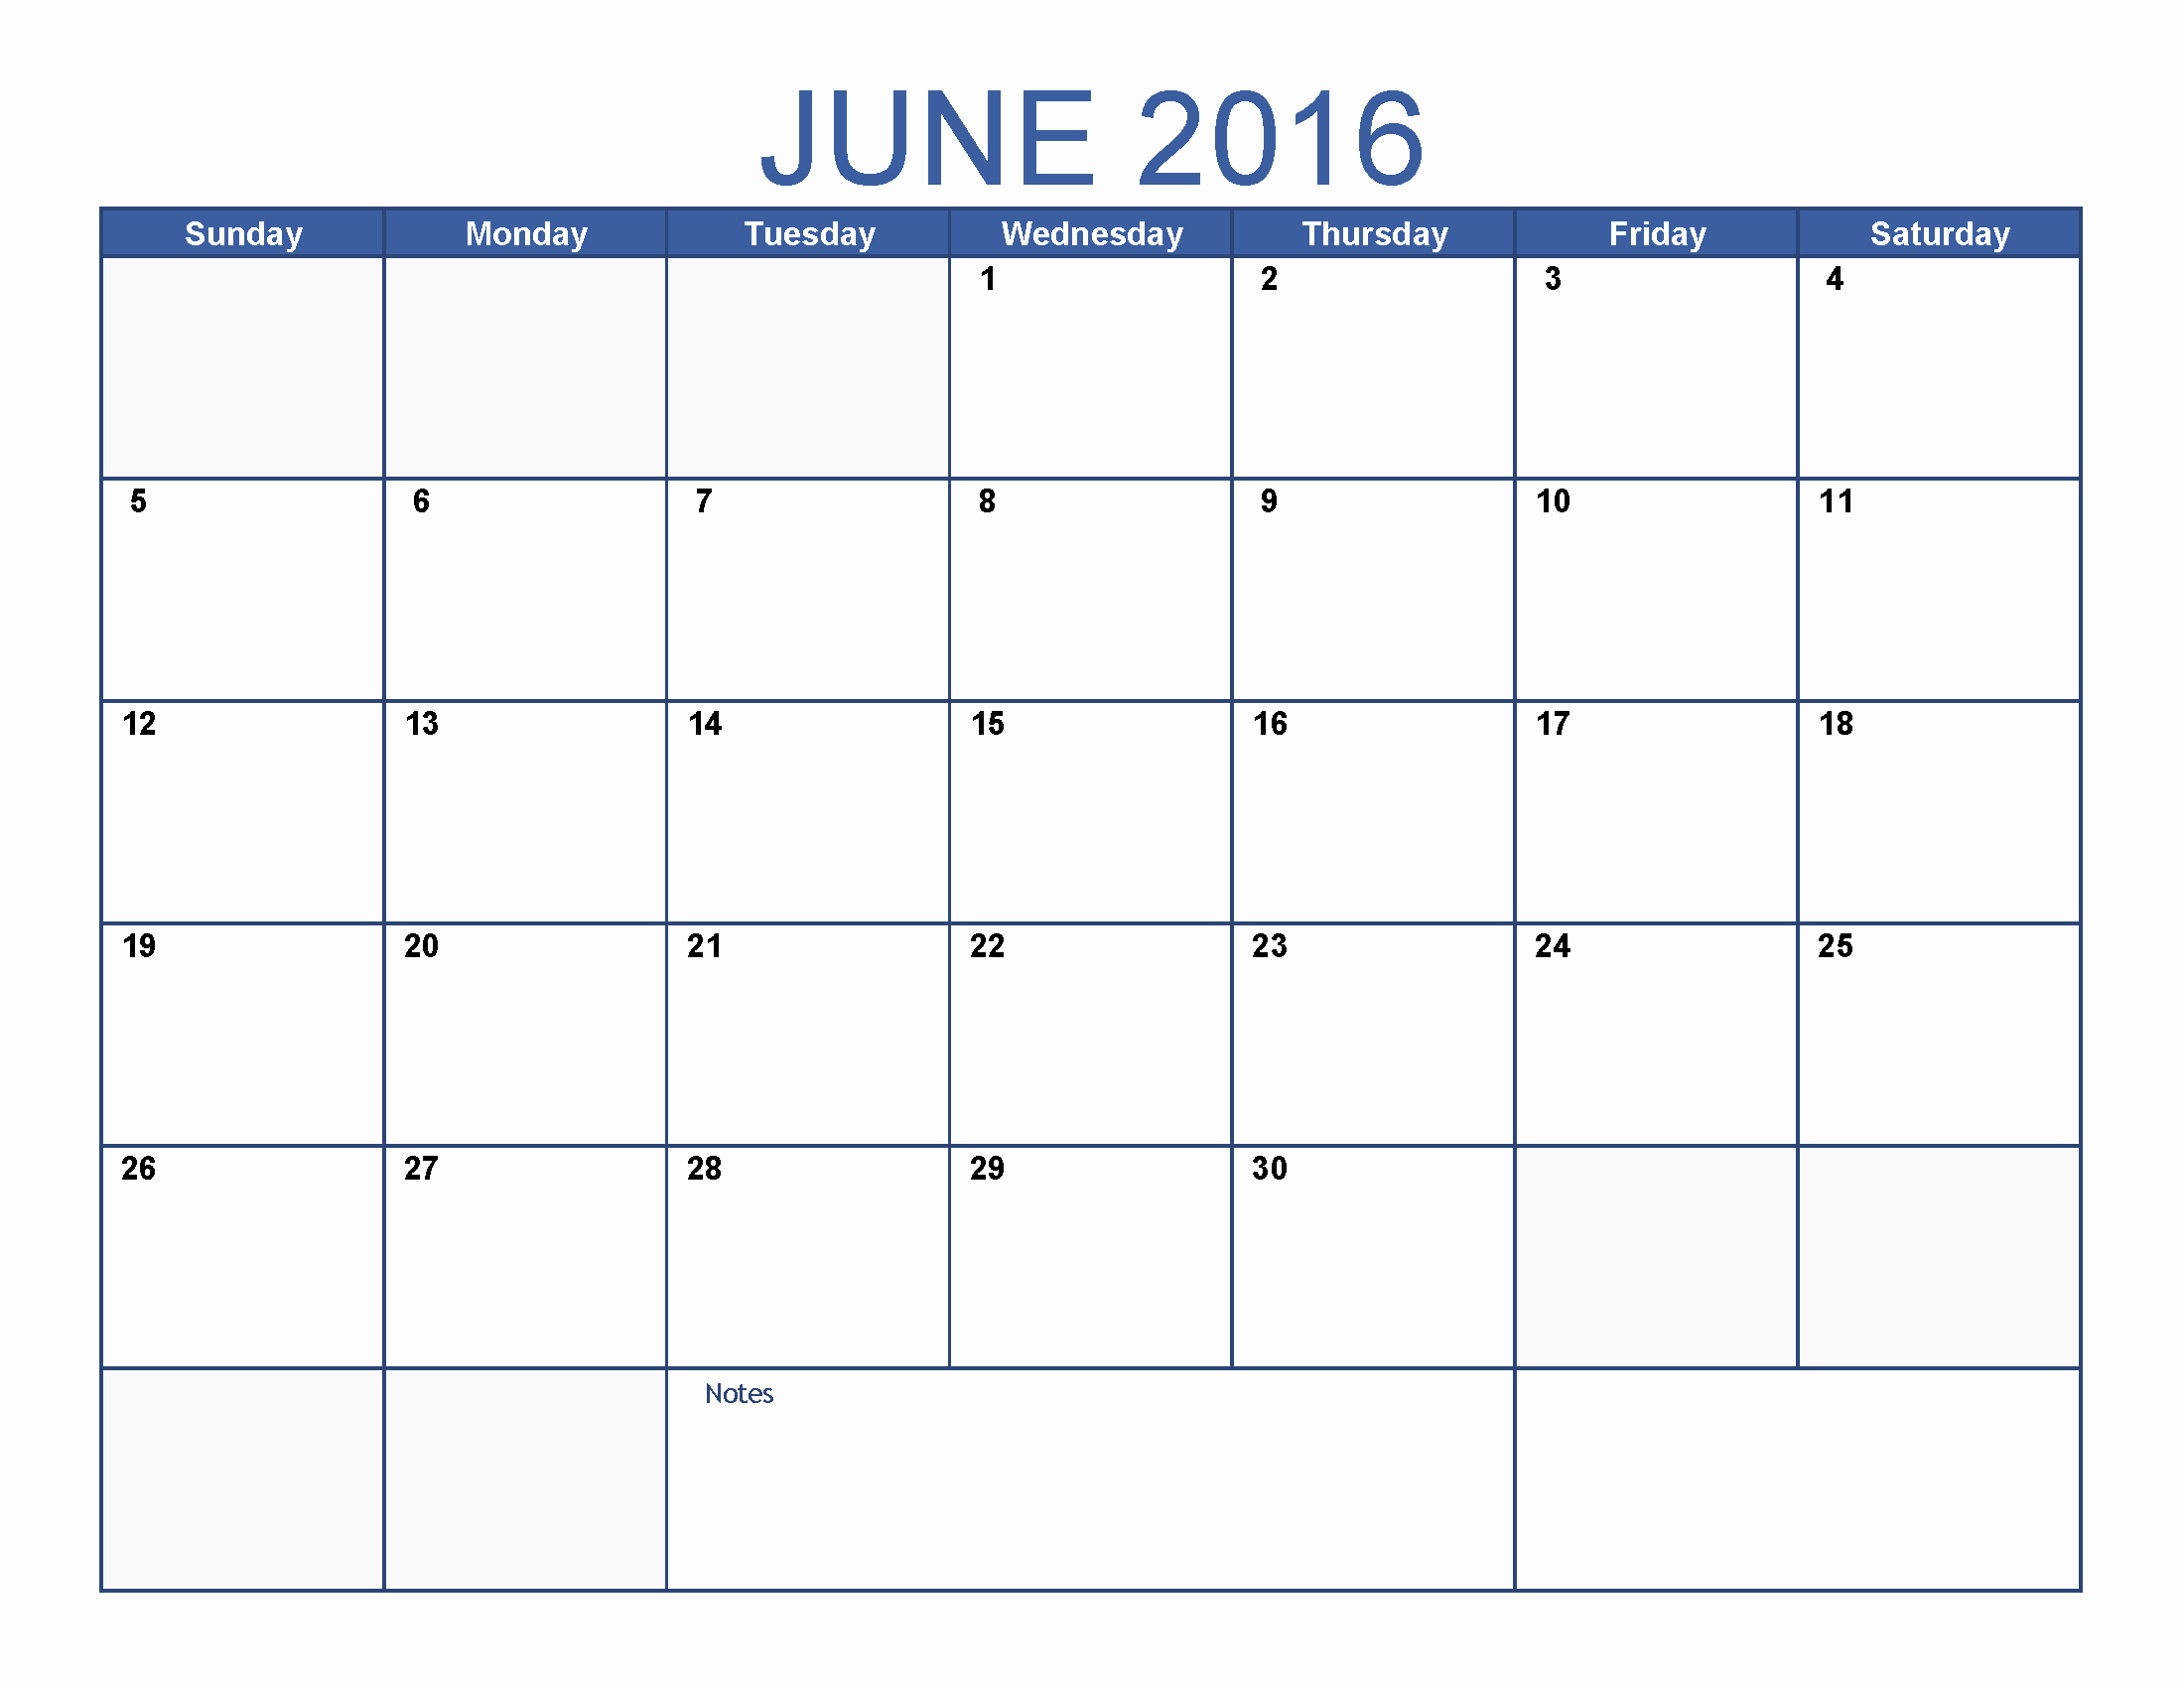 Blank Calendar Template 2016 Fresh June 2016 Printable Calendar Blank Templates